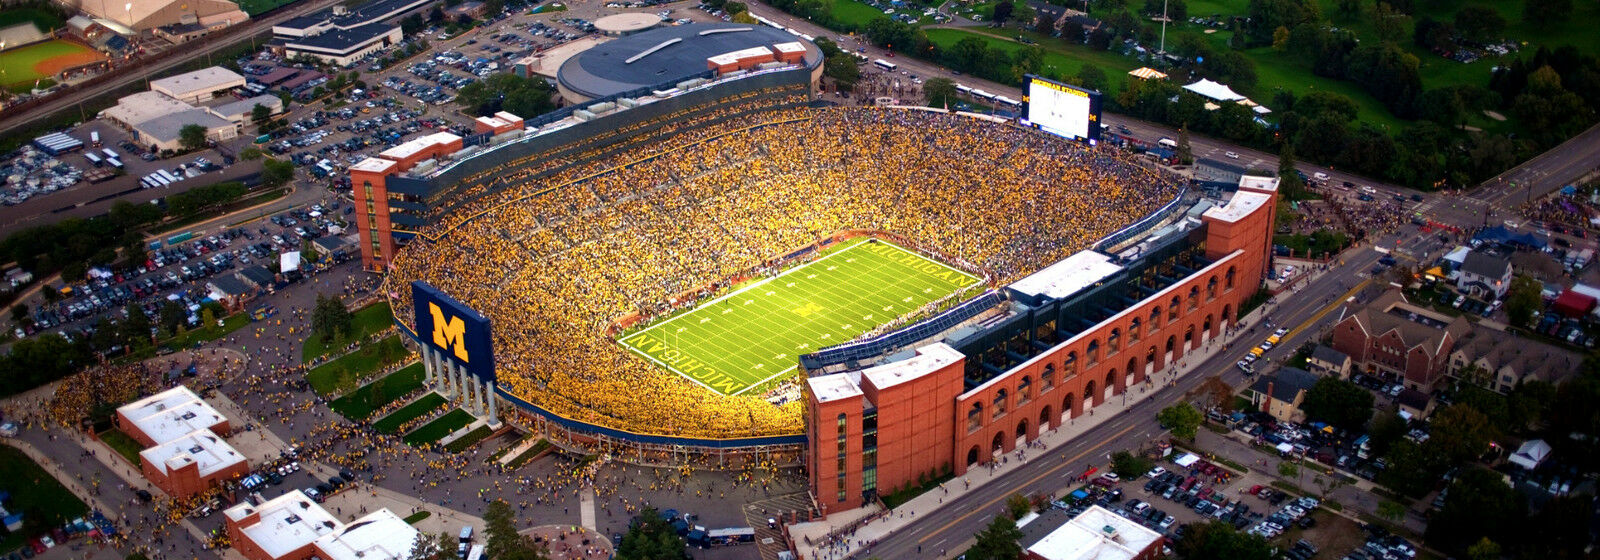 2017 Michigan Wolverines Football Season Tickets - Season Package (Includes Tickets for all Home Games)